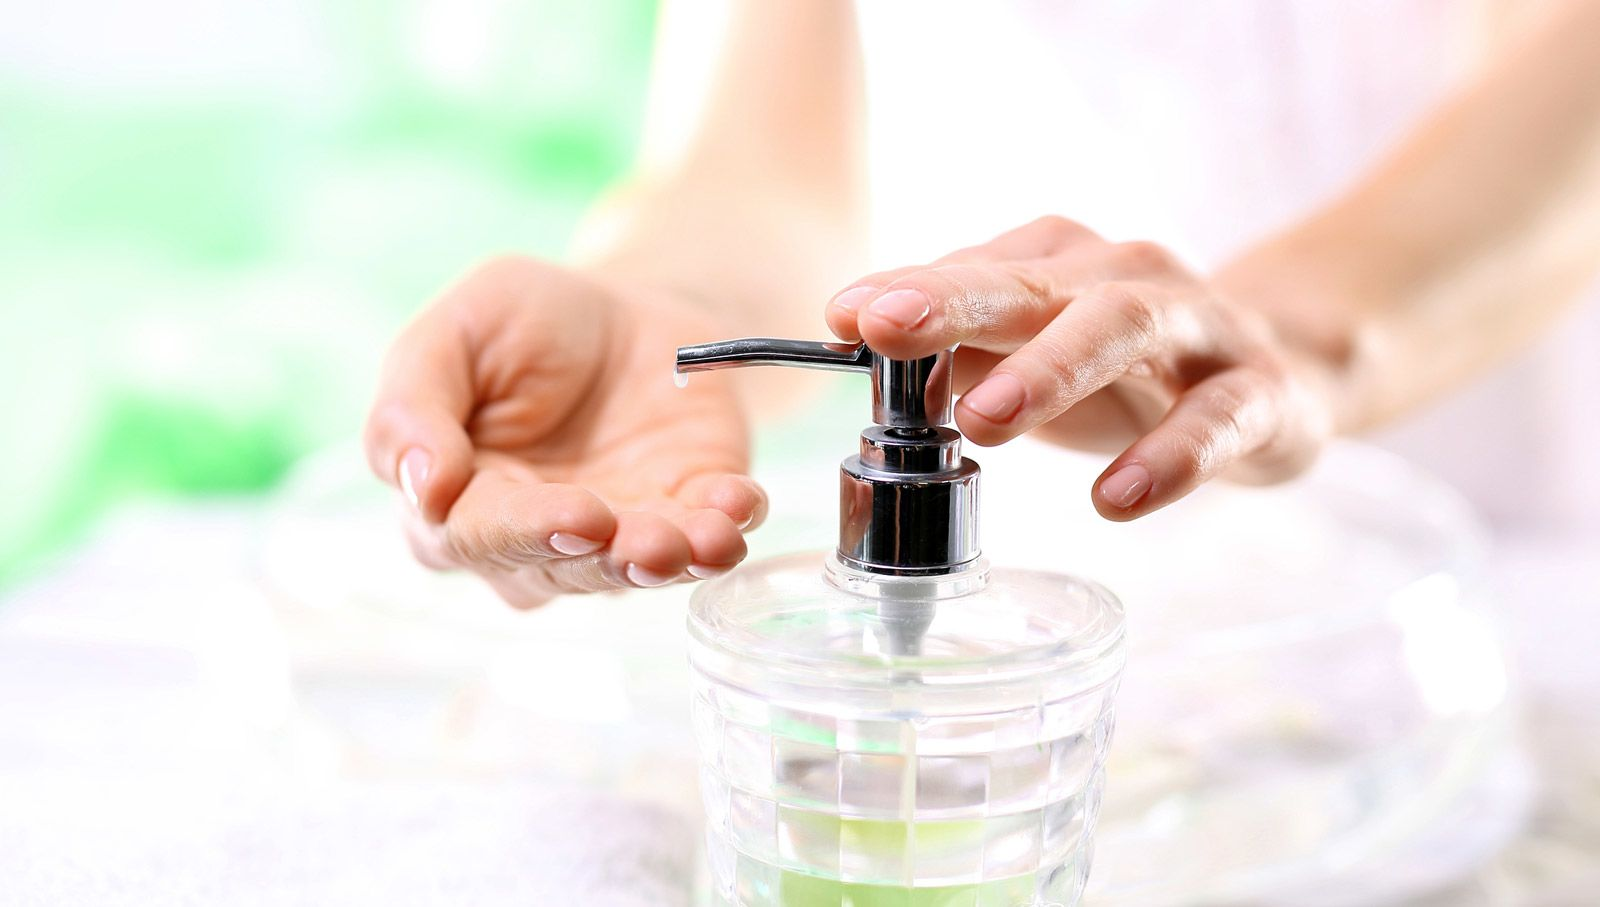 Say Goodbye to Antibacterial Soaps